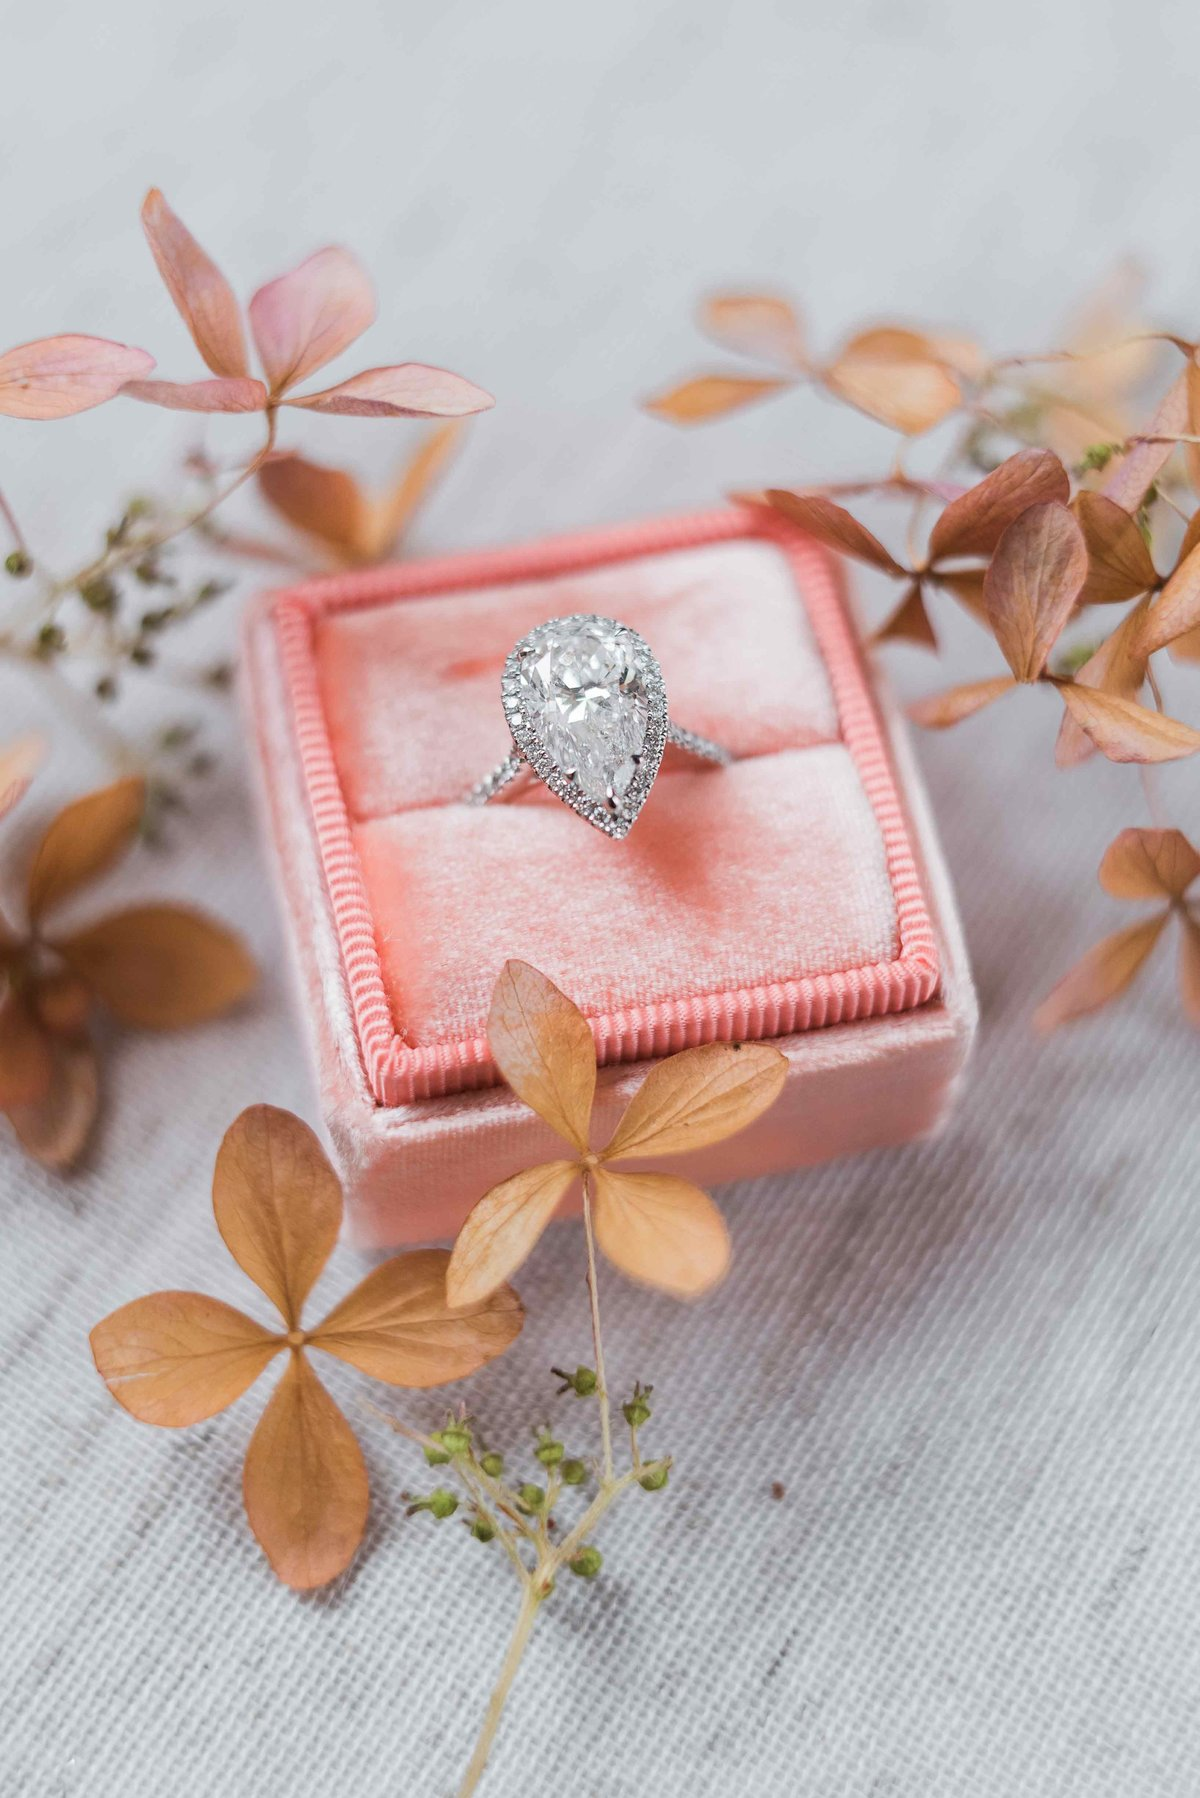 laure_lalliard_design_claire_morris_photography_engagement_ring